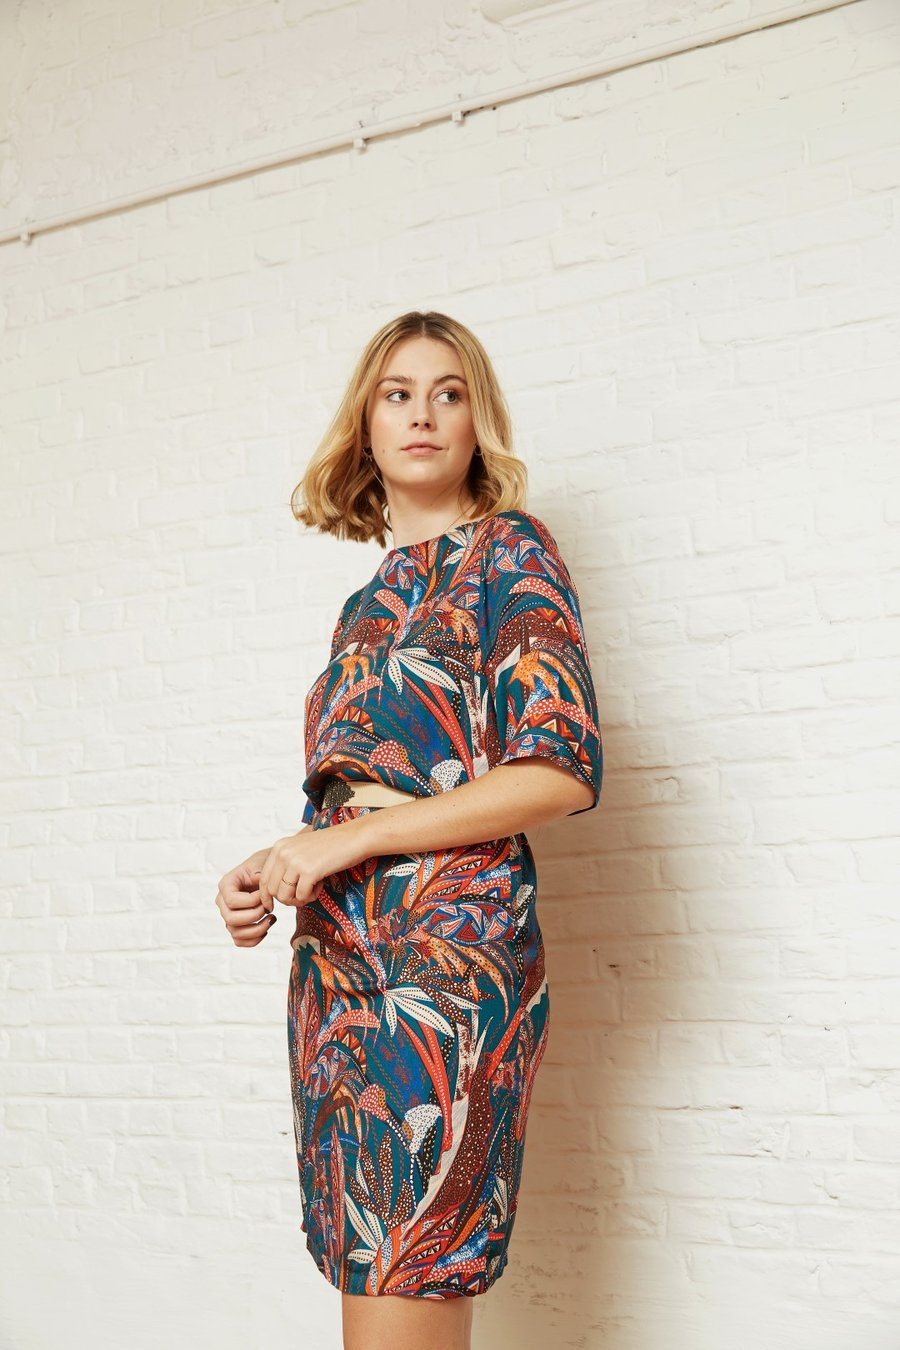 Atelier Jupe - Pippa Dress Sewing Pattern